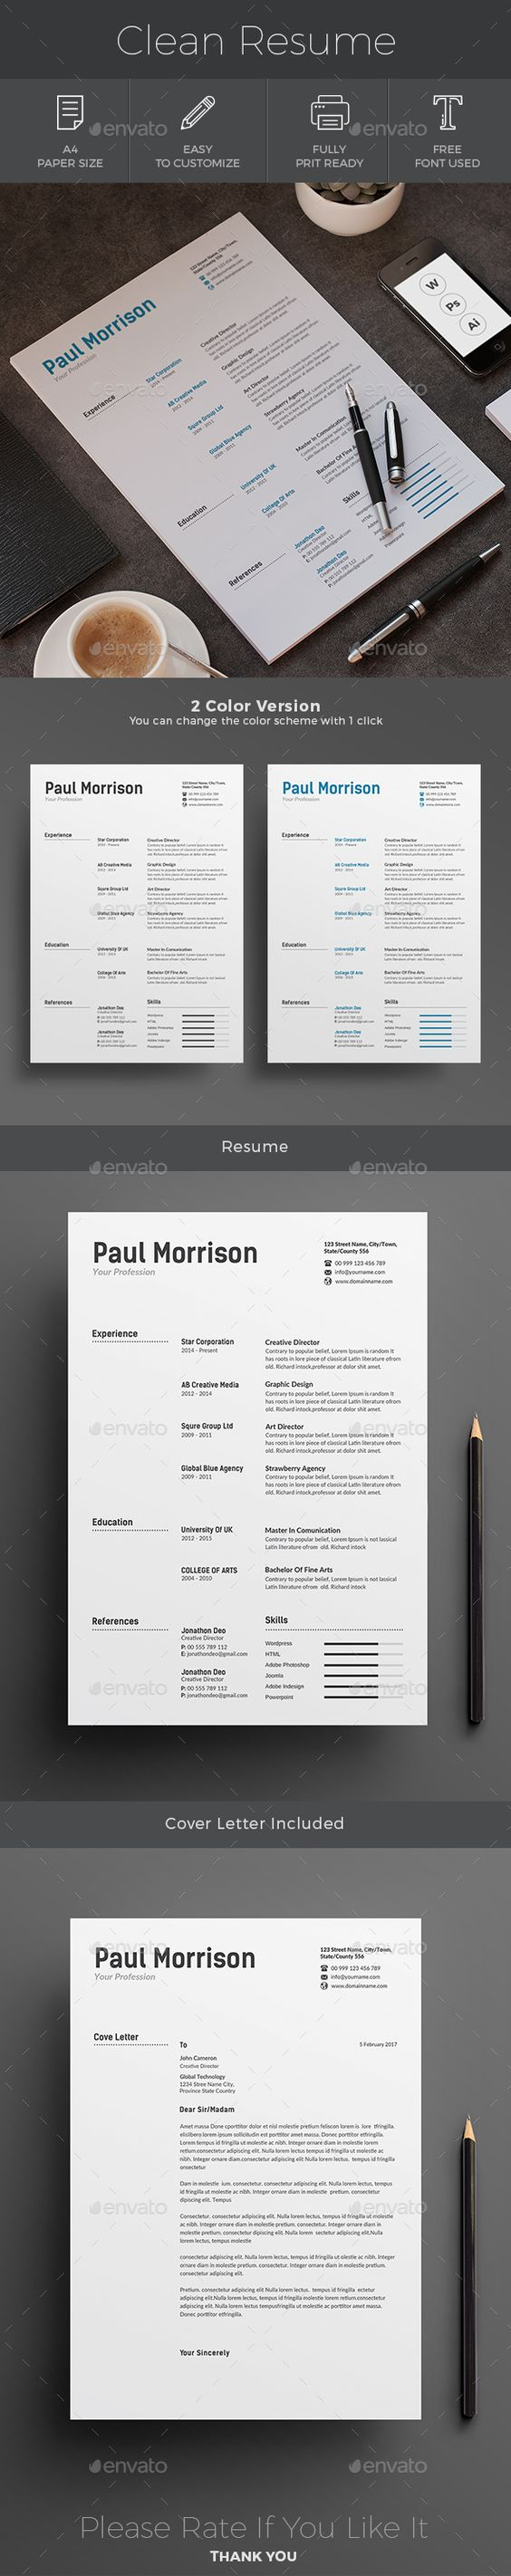 Good Resume Verbs Resume  Words Microsoft And Minimalist Design Java Architect Resume Word with Resume Examples College Students Resume  Resumes Stationery Resumecv Word Template Is A Minimal Bold  Dynamic And Professional Resume Template  With Free Cover Letter  Easy To  Edit  Career Change Resume Sample